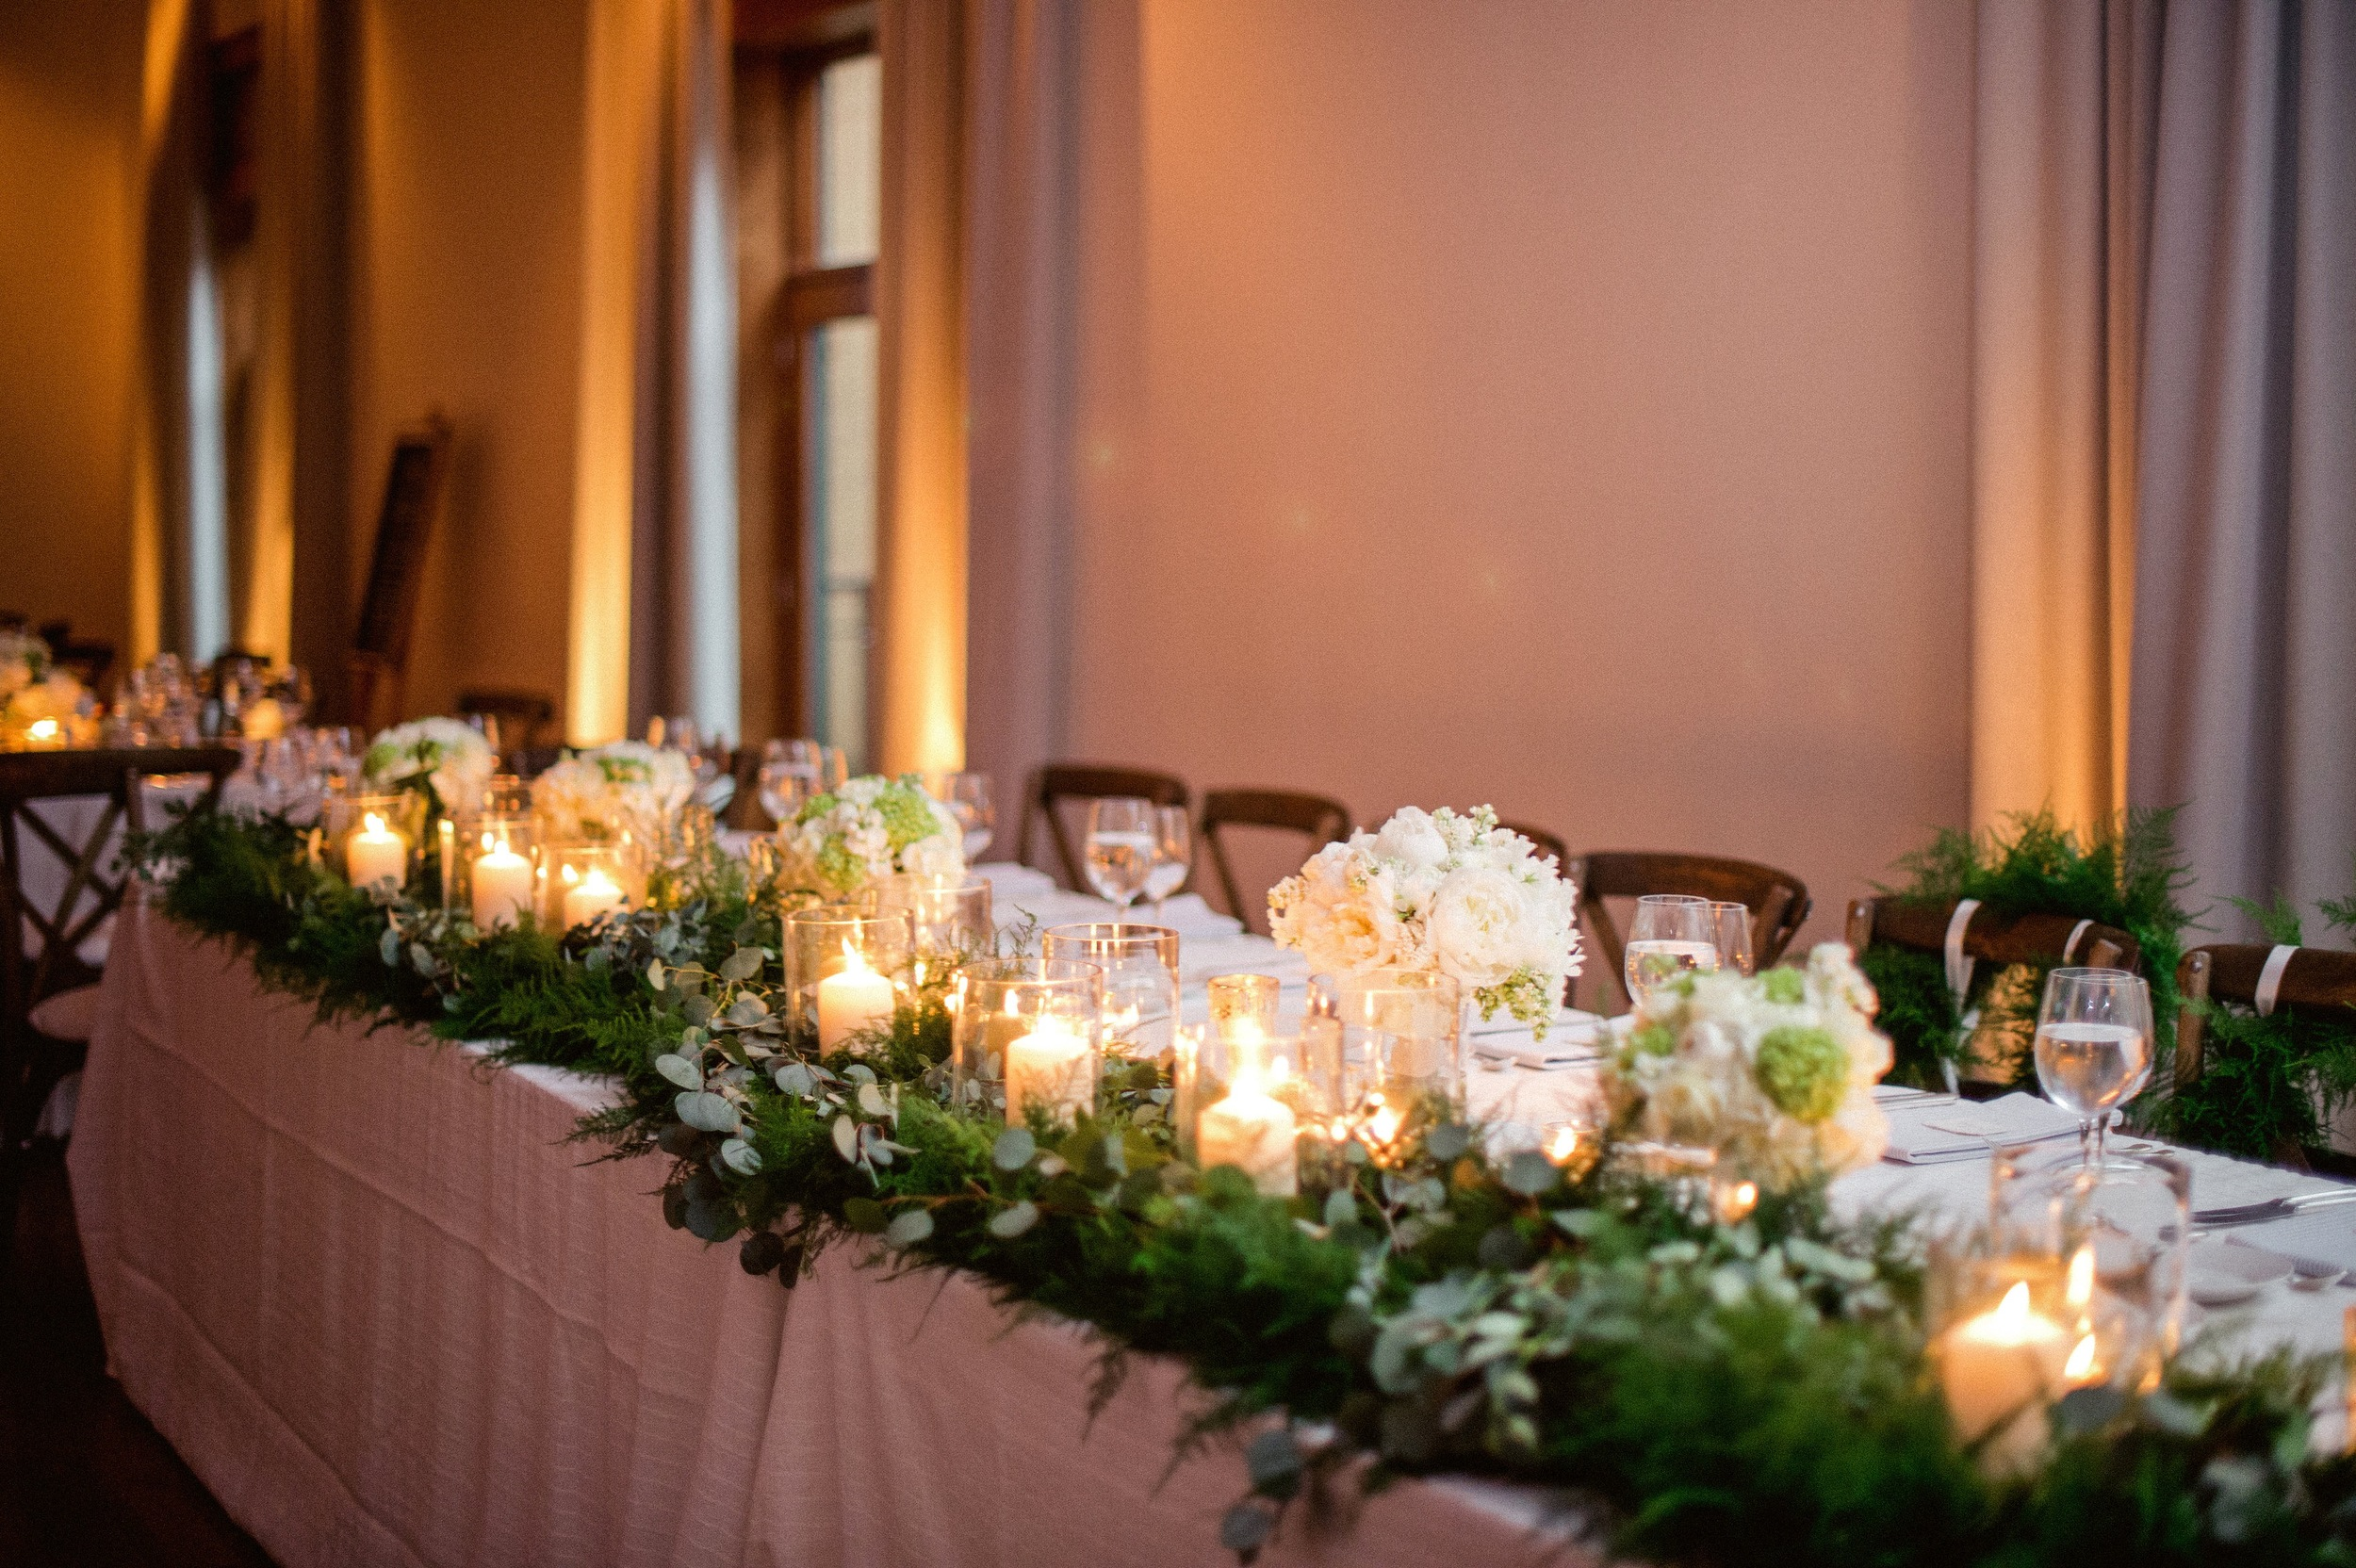 Flowers by Fleur Inc, photo by Amanda Megan Miller, with Jayne Weddings at the Ivy Room